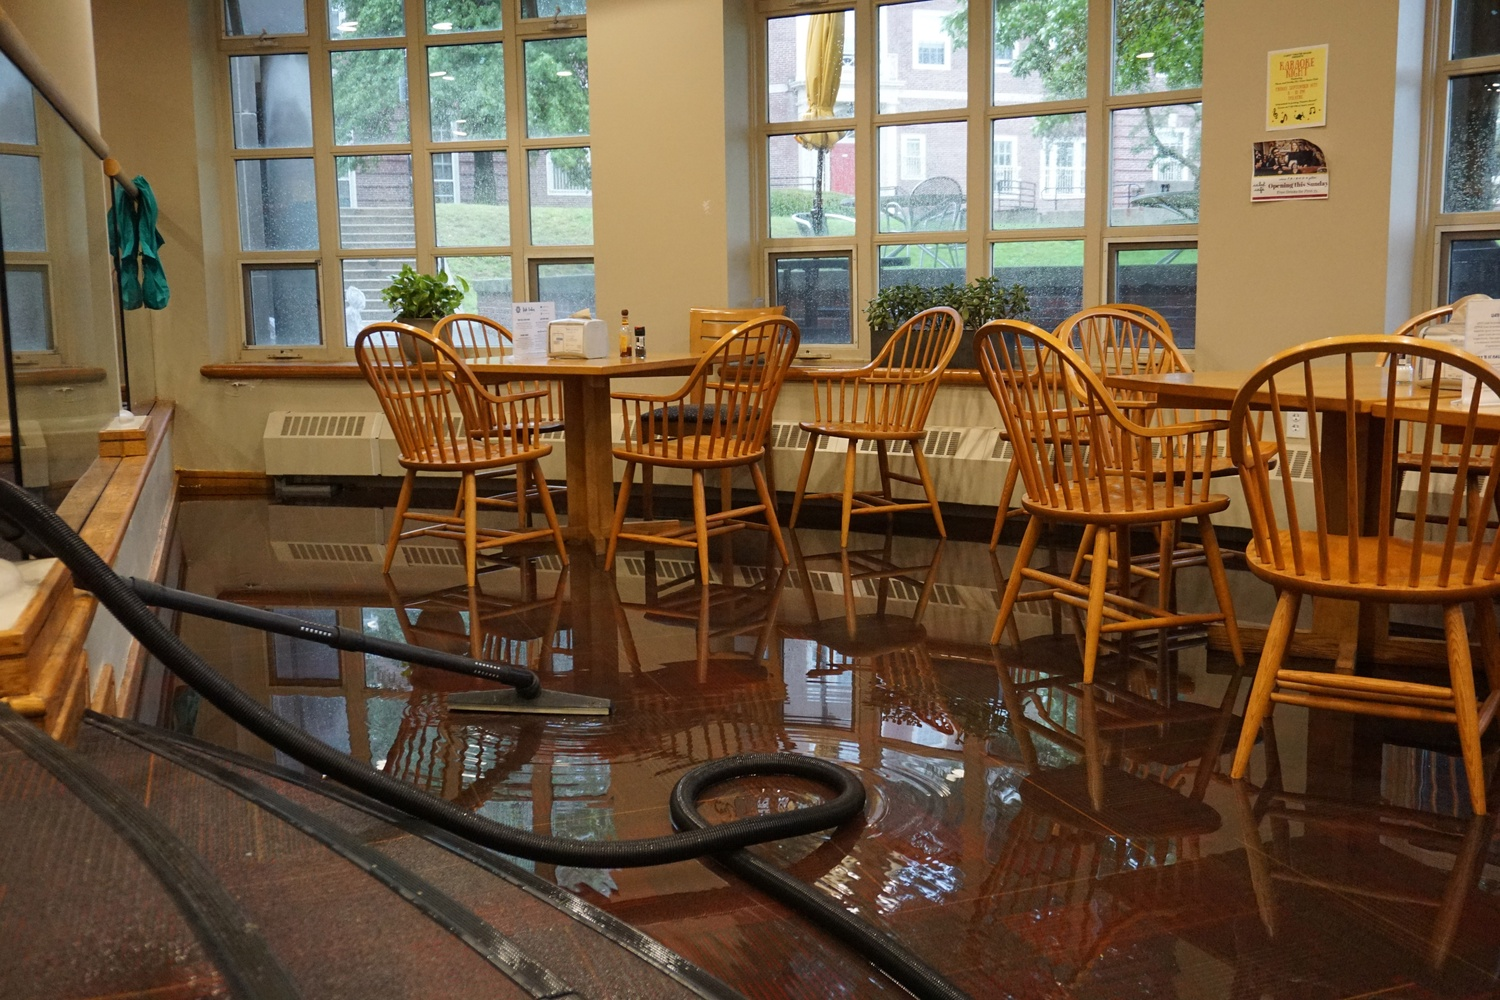 The Cabot dinining hall flooded Tuesday amidst heavy rain. Dining service was temporarily suspended.